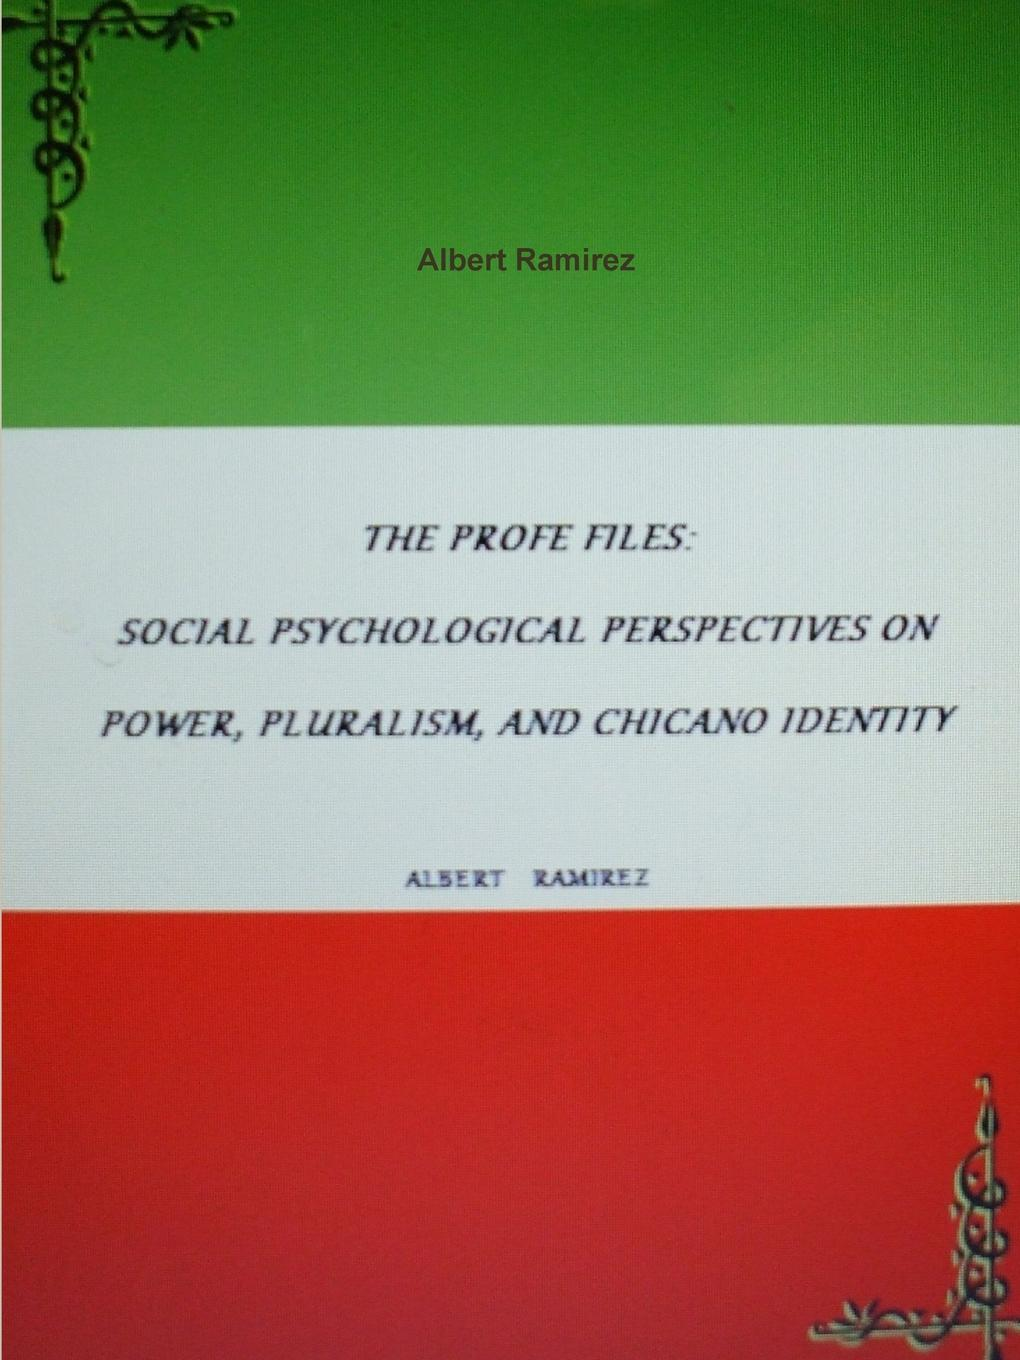 цена Albert Ramirez The Profe Files. Social Psychological Perspectives on Power, Pluralism, and Chicano Identity онлайн в 2017 году